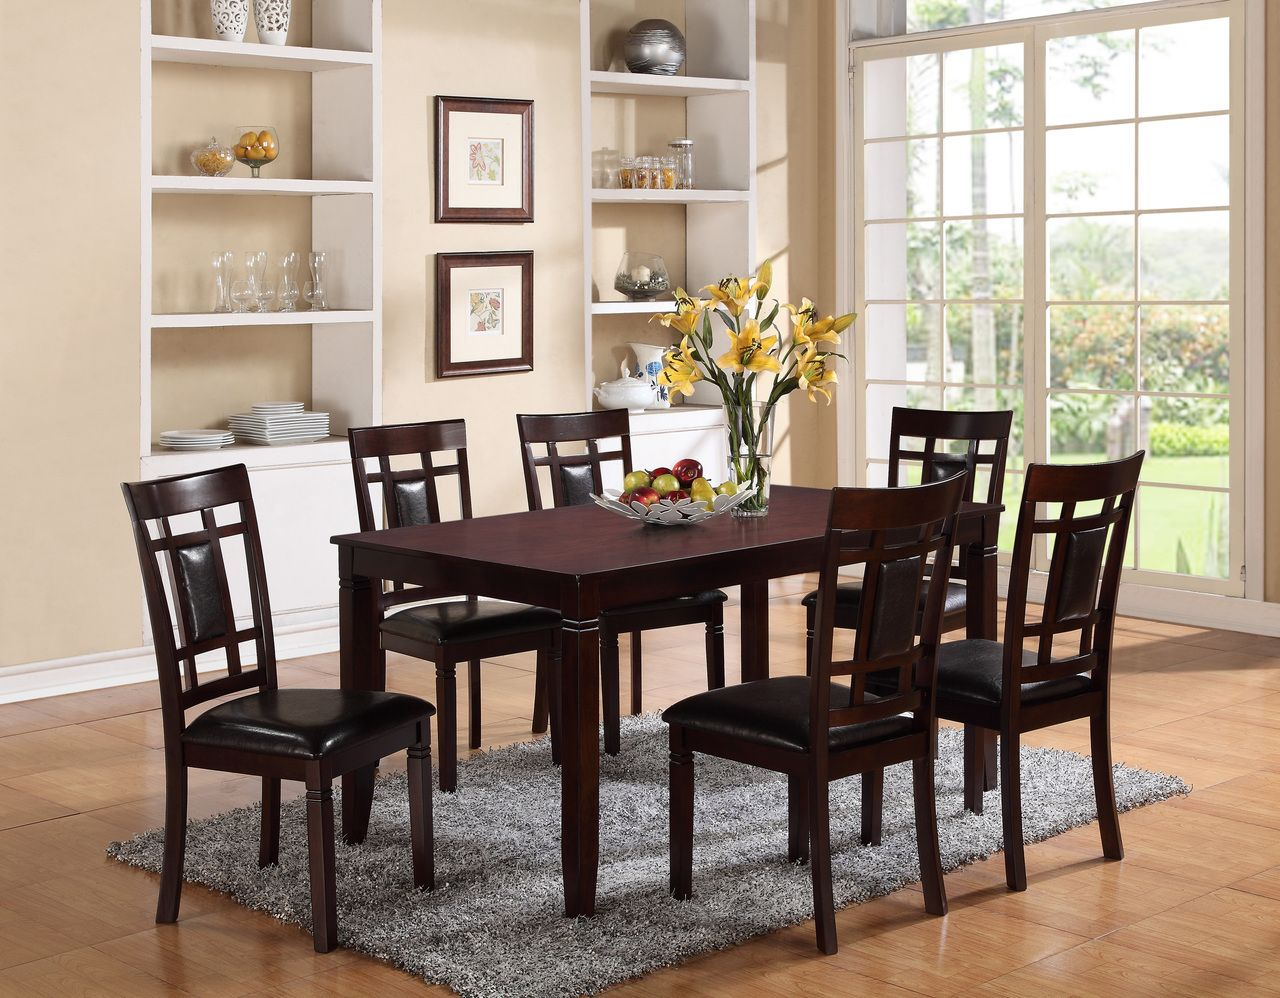 Paige 7 Pk Dining Room Table Set Just 355 00 With Space Enough For Six People Pul Formal Dining Room Sets Dining Room Renovation Rectangular Dining Table